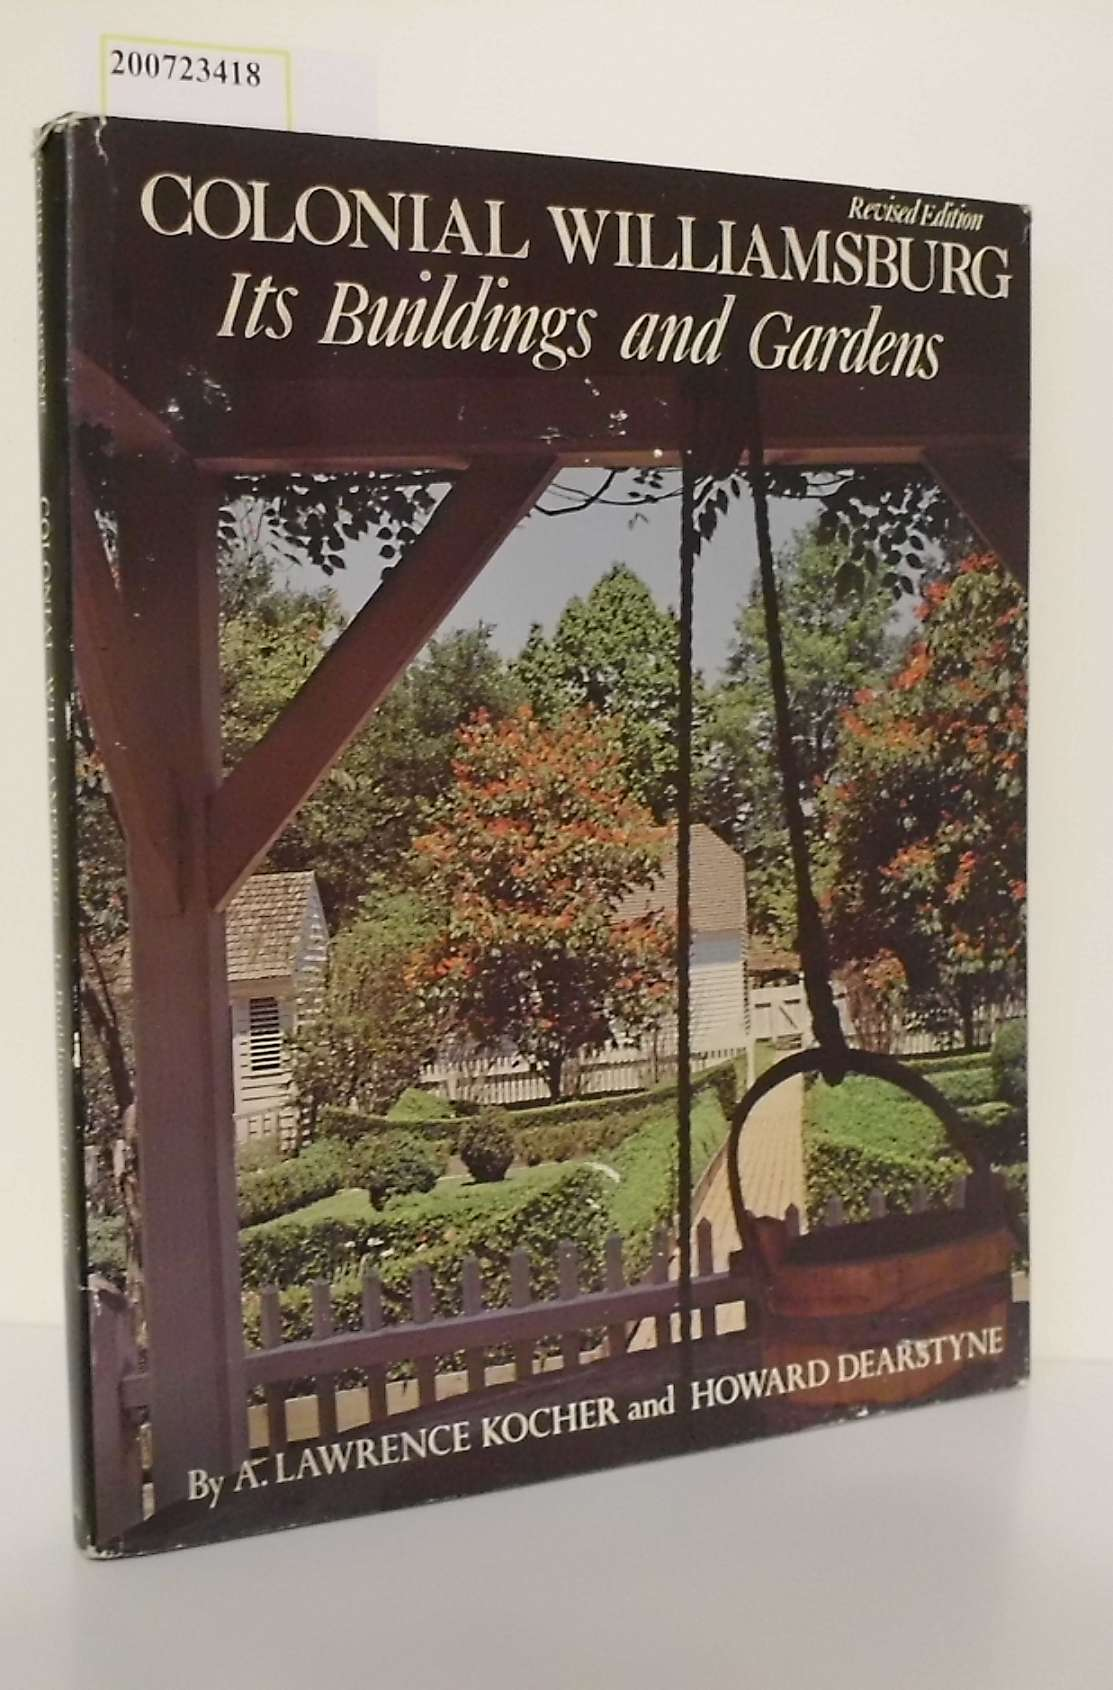 """Kocher, A. Lawrence; Dearstyne, Howard""  ""Kocher, A. Lawrence; Dearstyne, Howard"" Colonial Williamsburg, its buildings and gardens: A descriptive tour of the restored capital of the British Colony of Virginia."